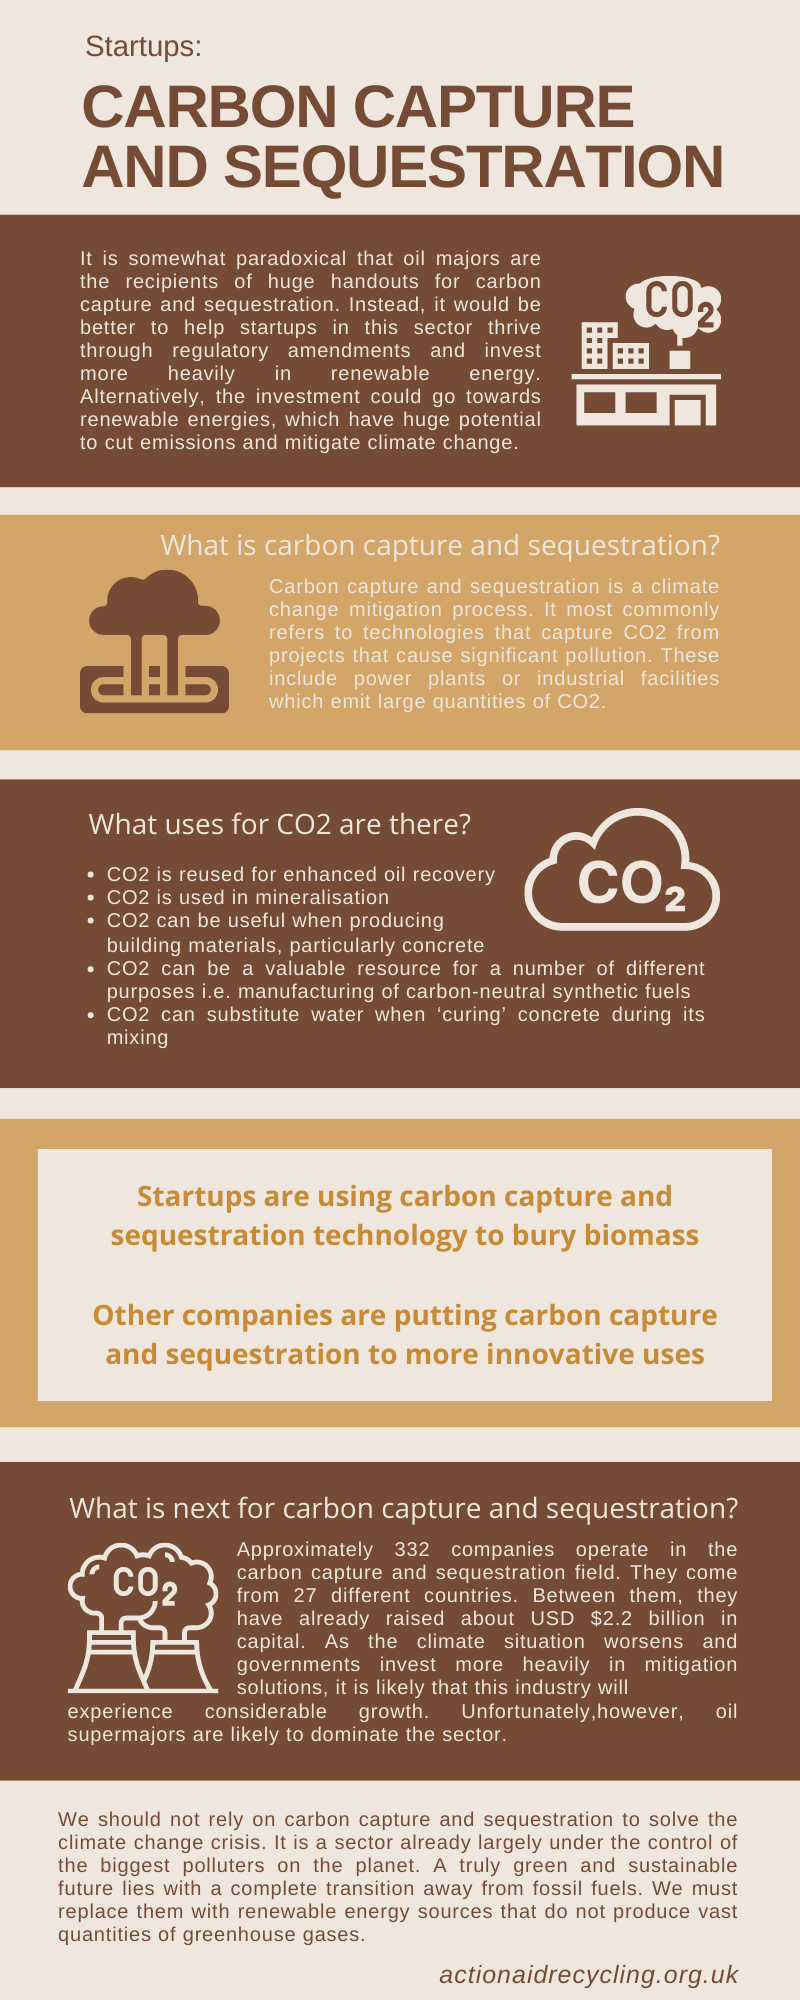 Graphic on Startups: Carbon Capture and Sequestration